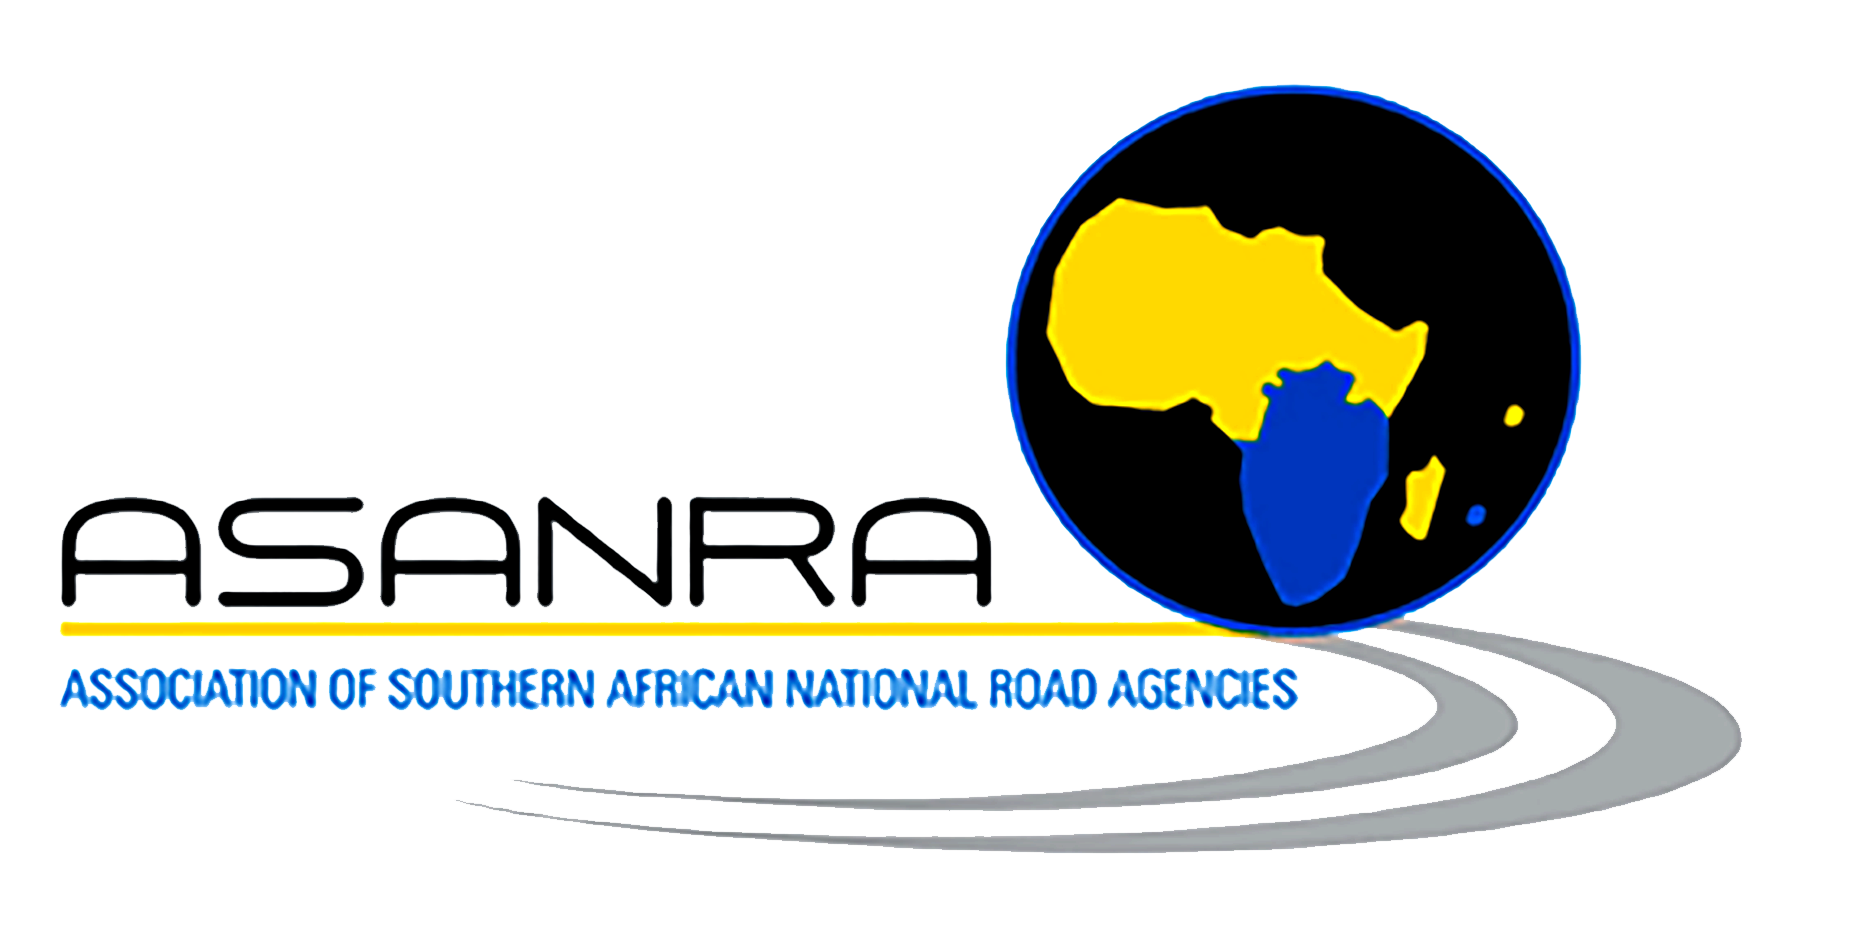 ASANRA: The Association of National Road Agencies